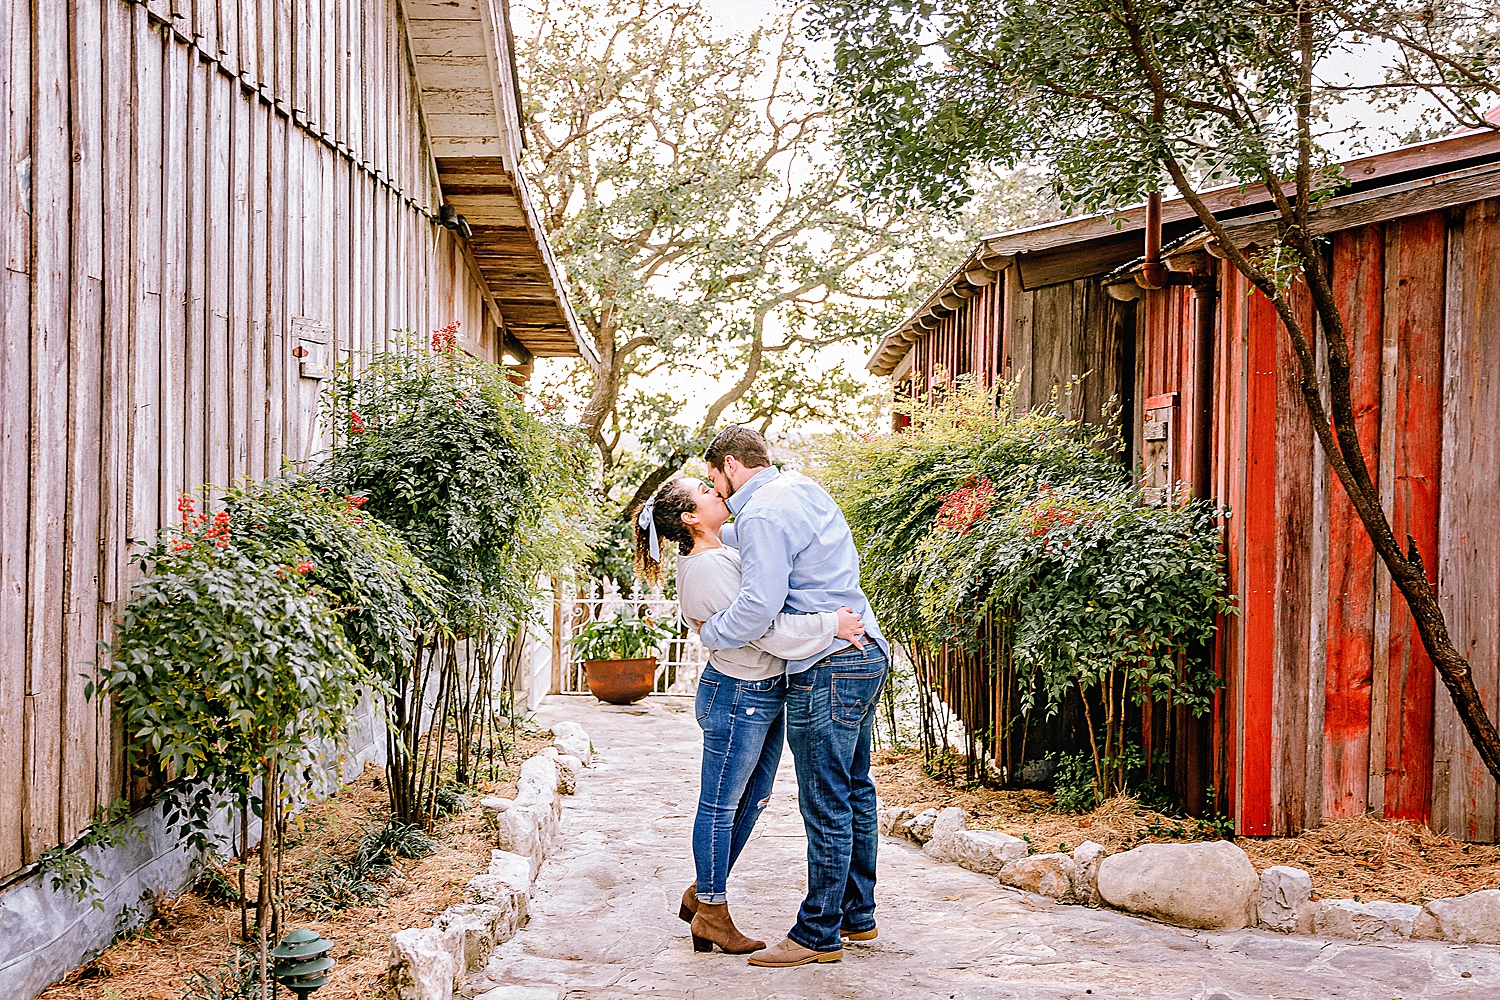 Engagement-photo-session-gruene-new-braunfels-texas-carly-barton-photography_0009.jpg